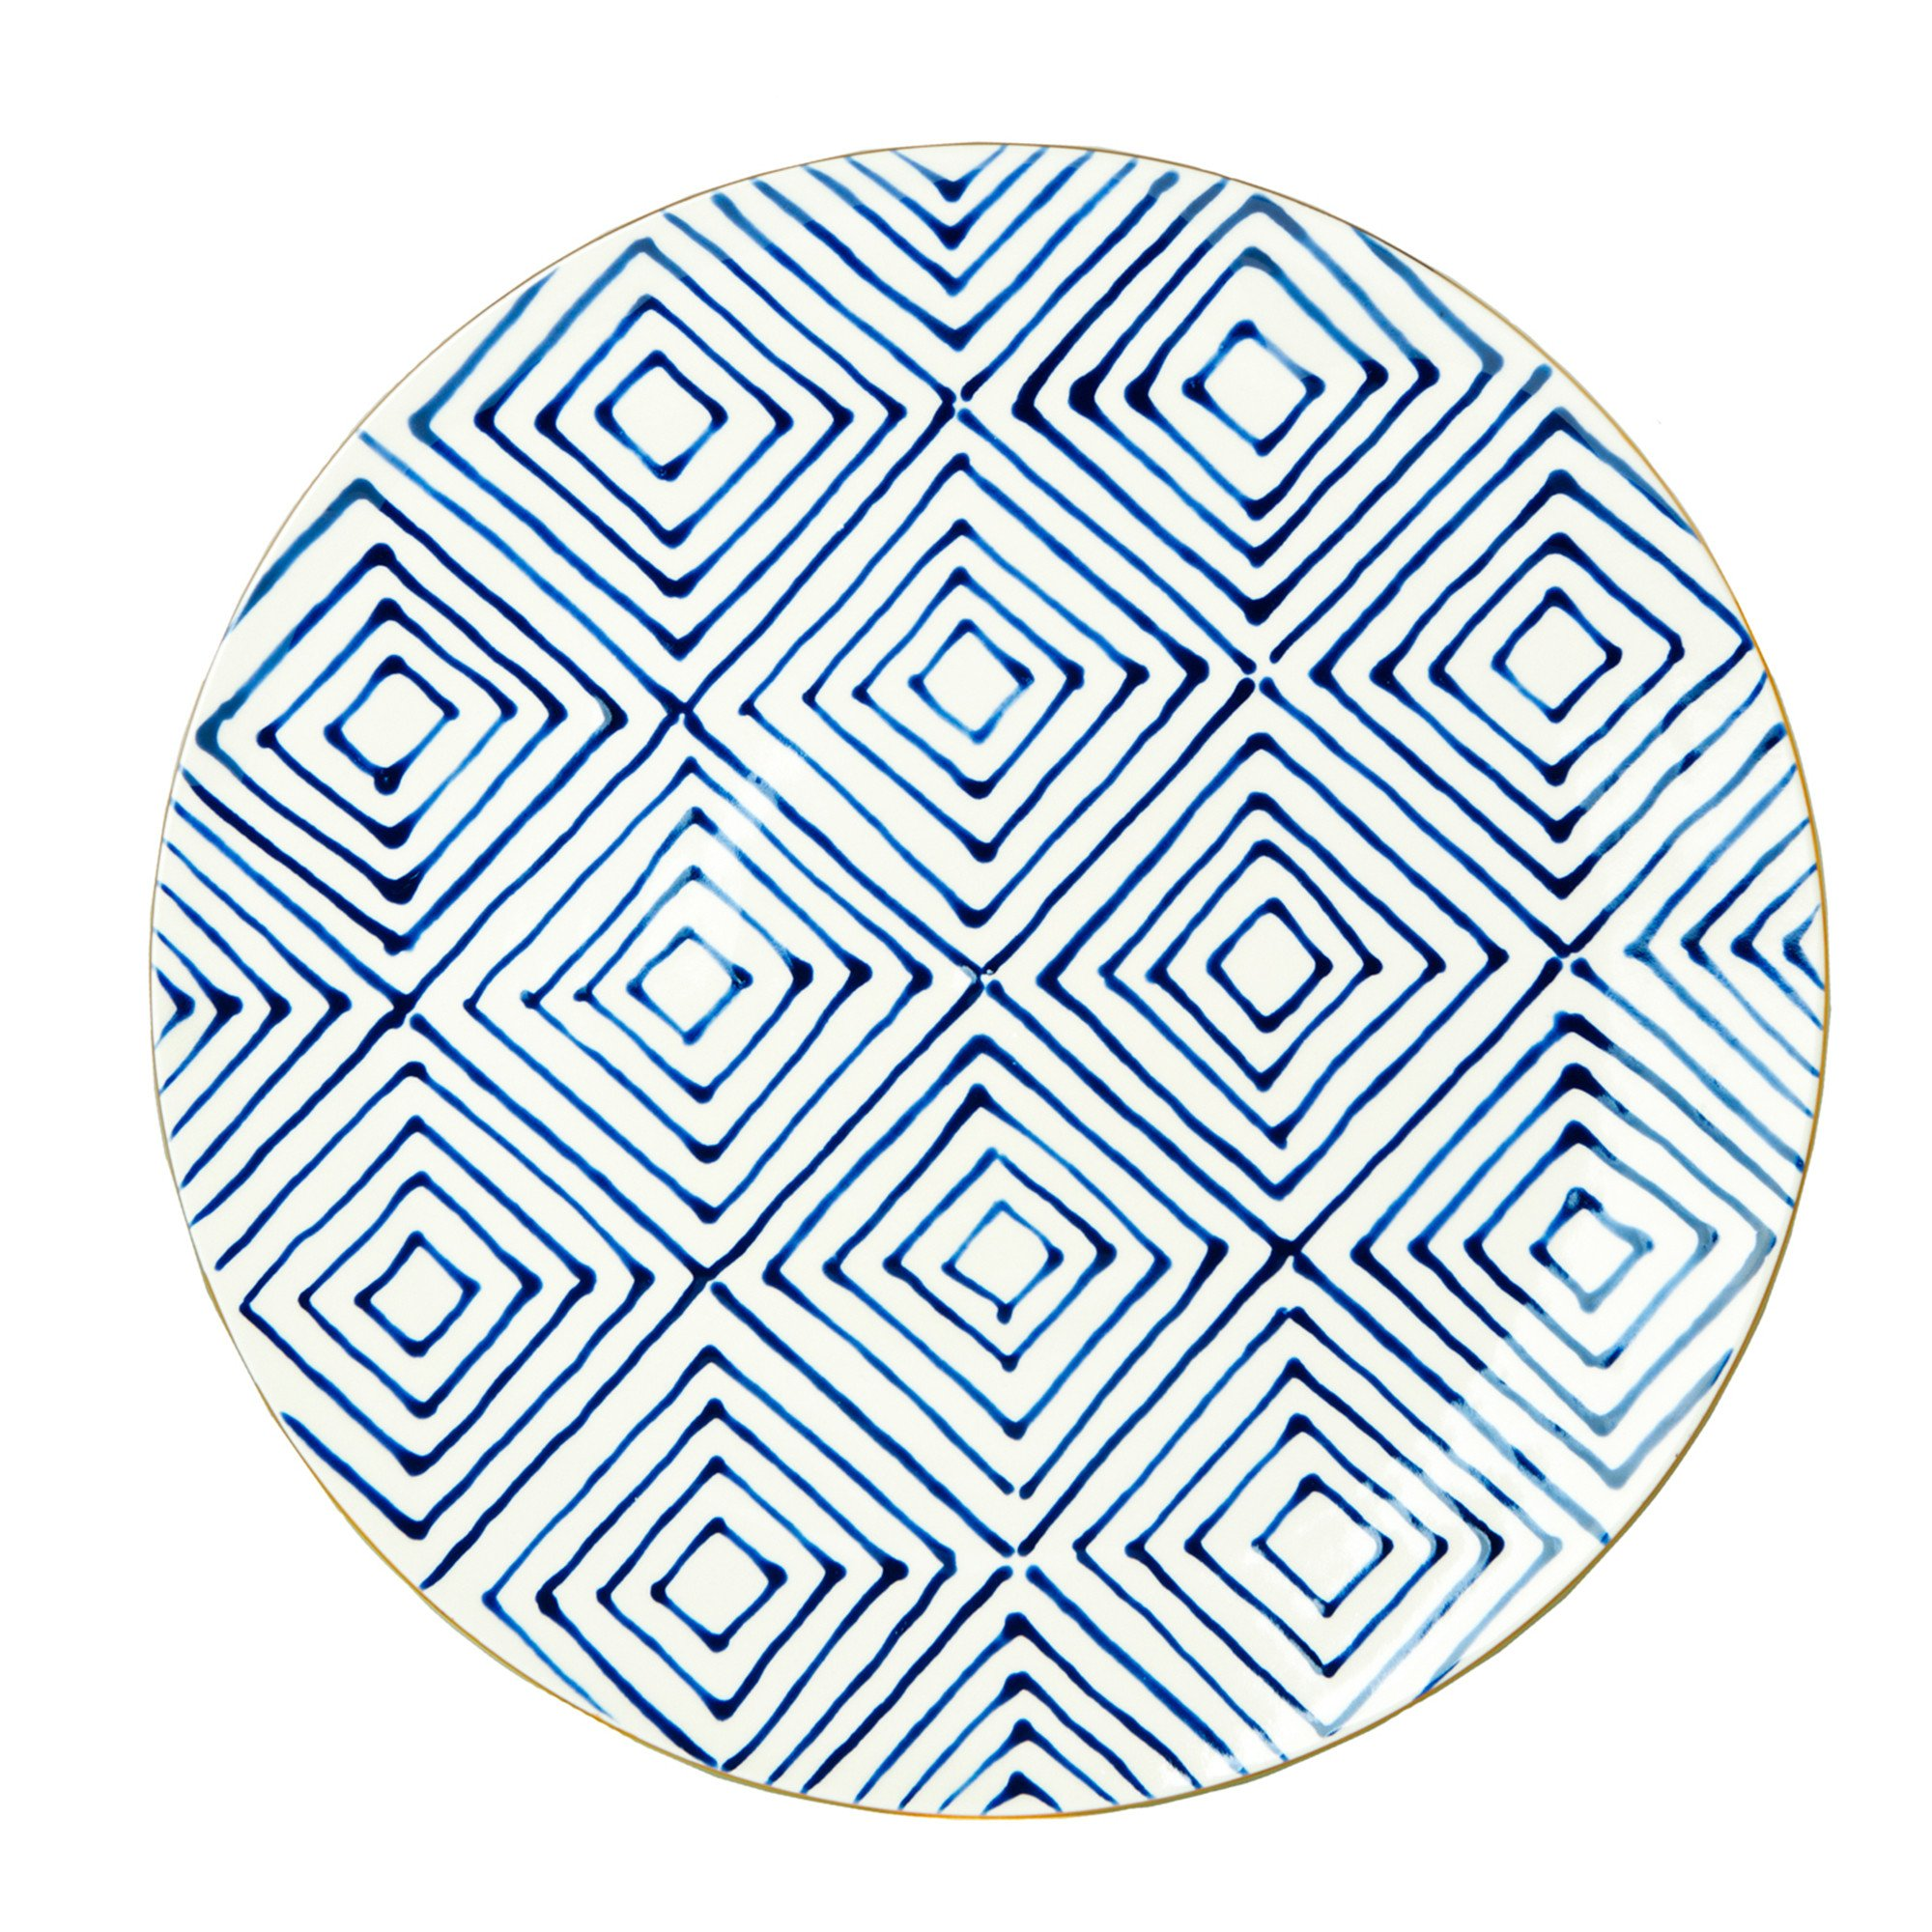 2000x2000 Pencil Amp Paper Co. Geo Dinner Plate